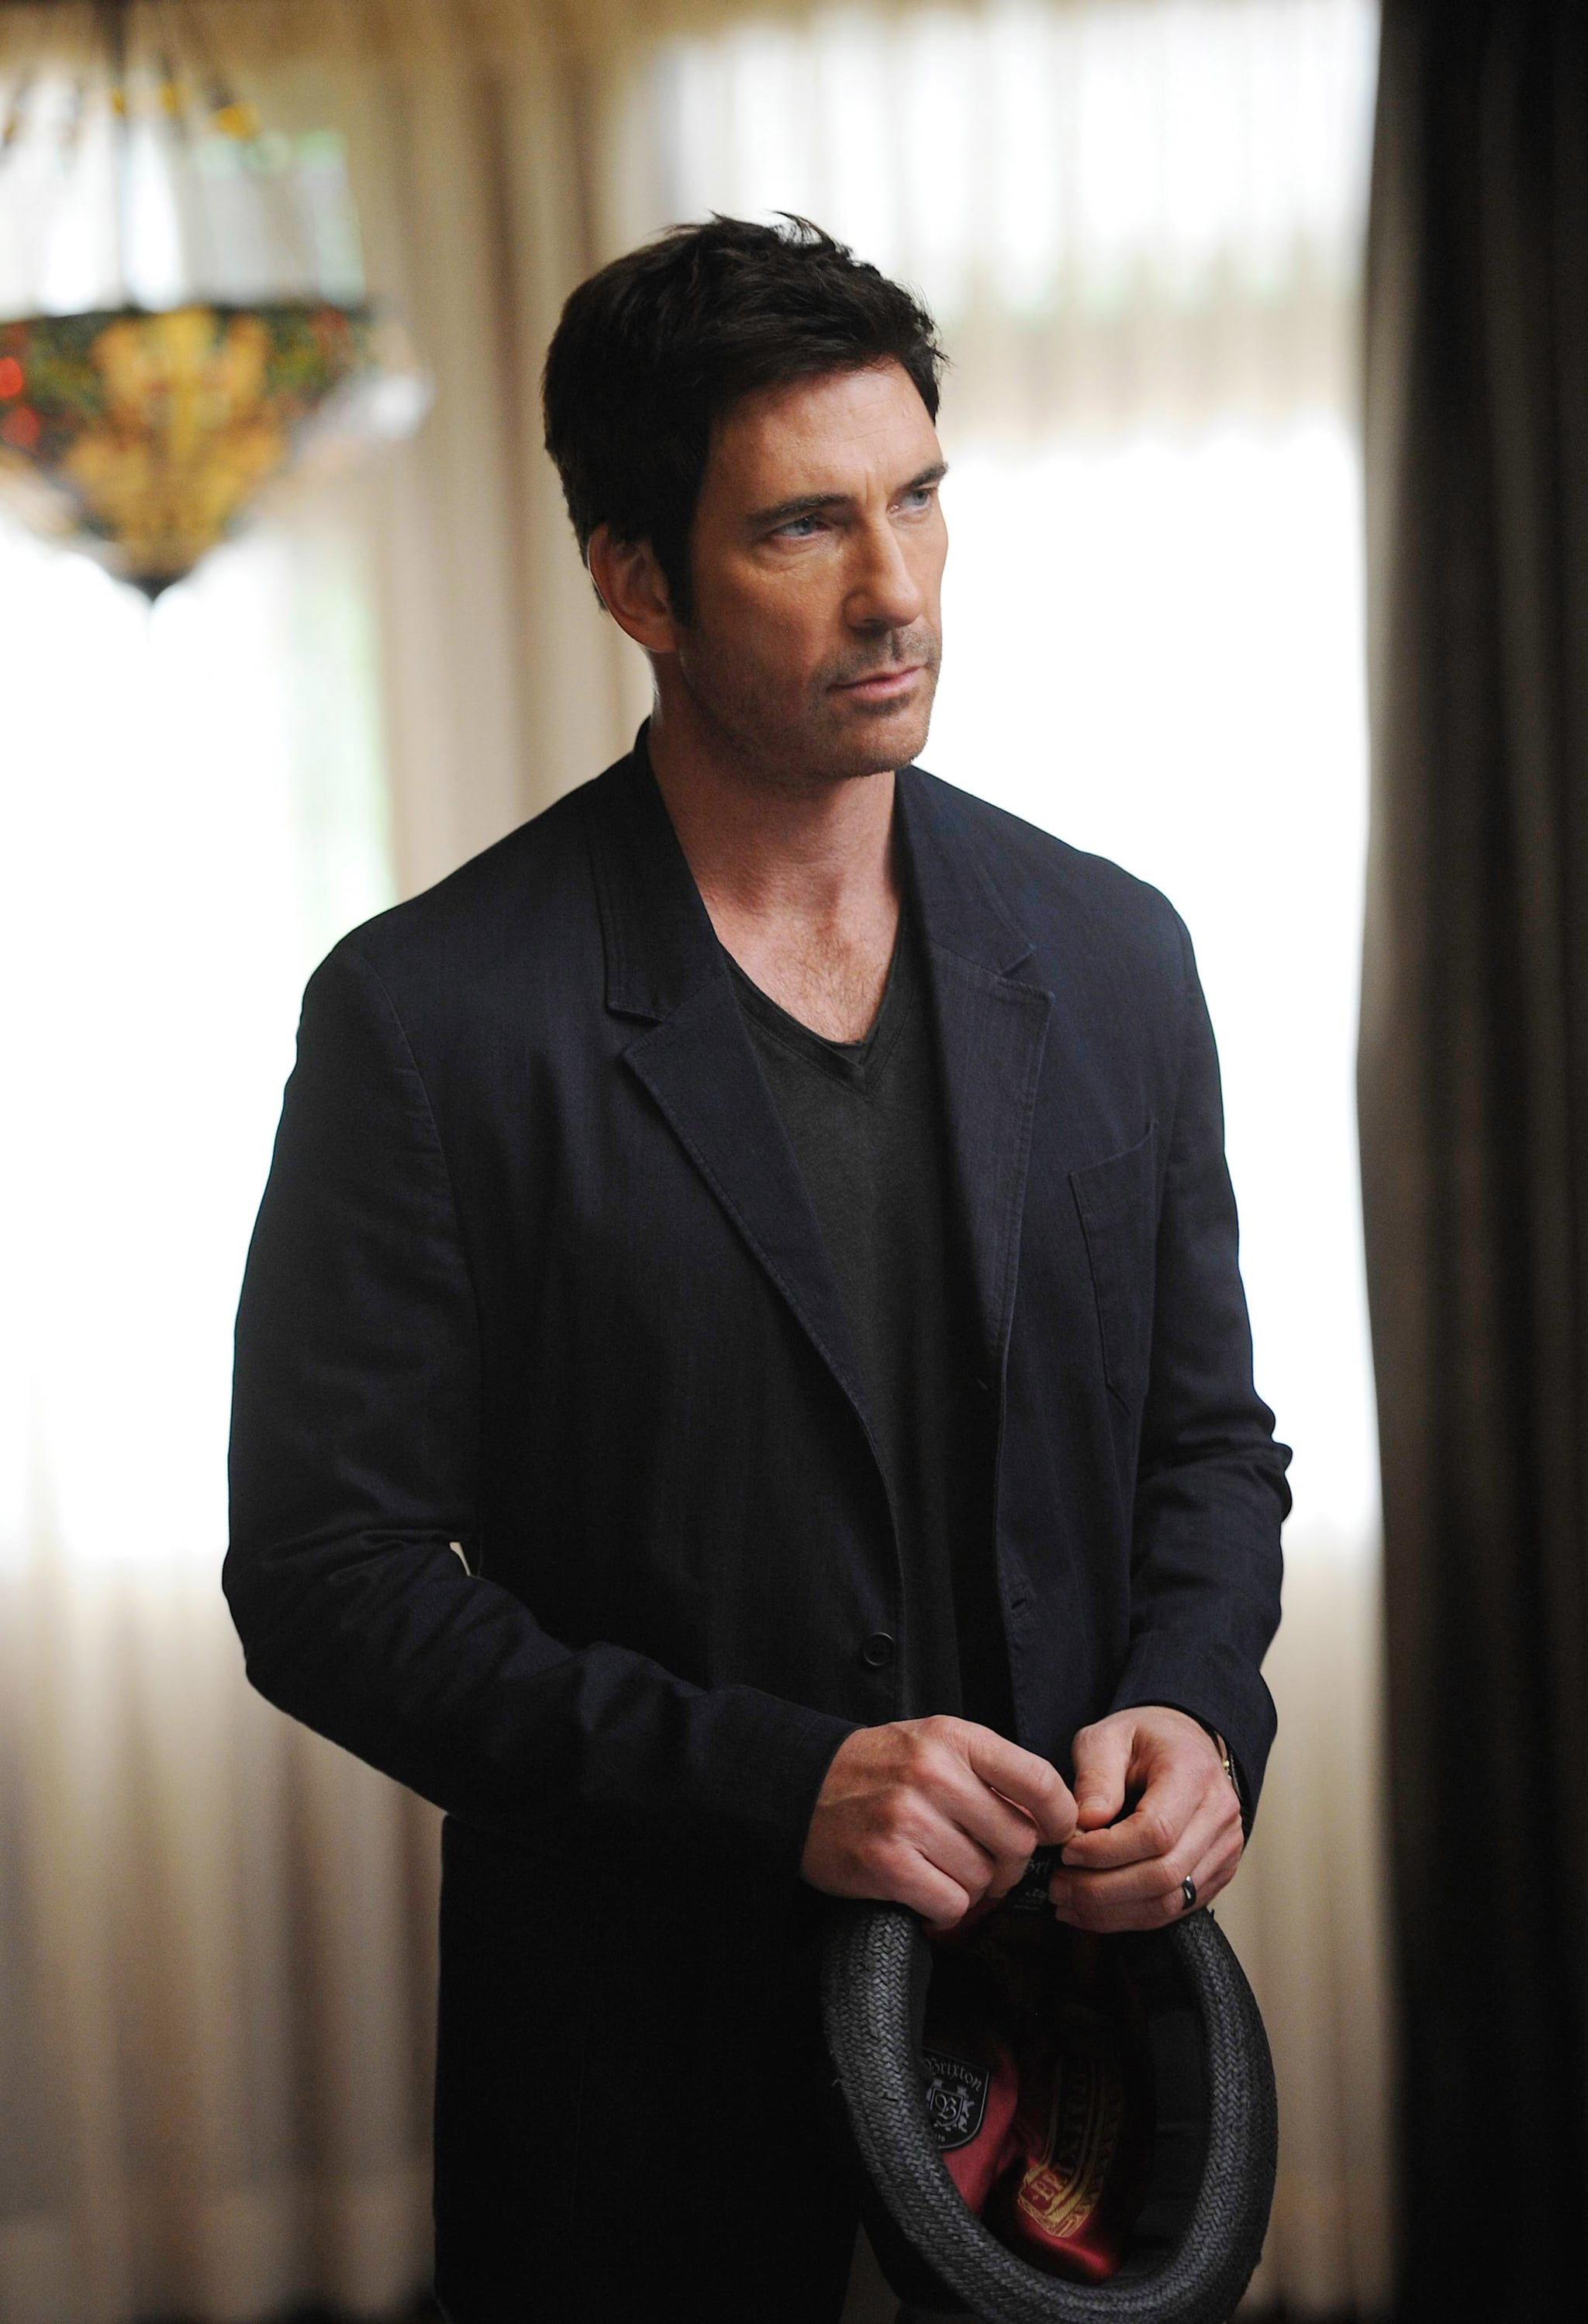 Dylan McDermott as Ben Harmon in Season 1